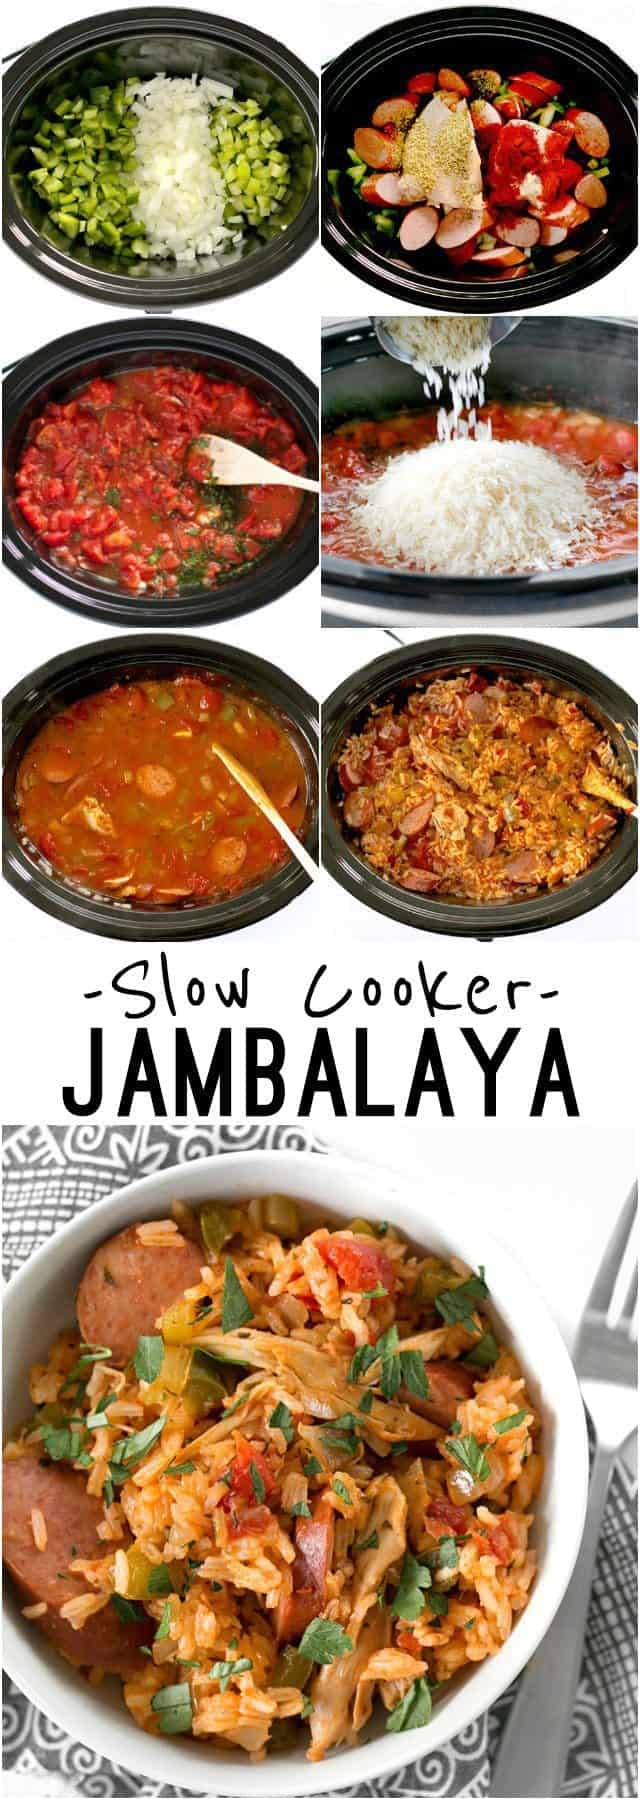 Slow Cooker Jambalaya has all the big flavor of the classic Louisiana dish with half the effort. BudgetBytes.com